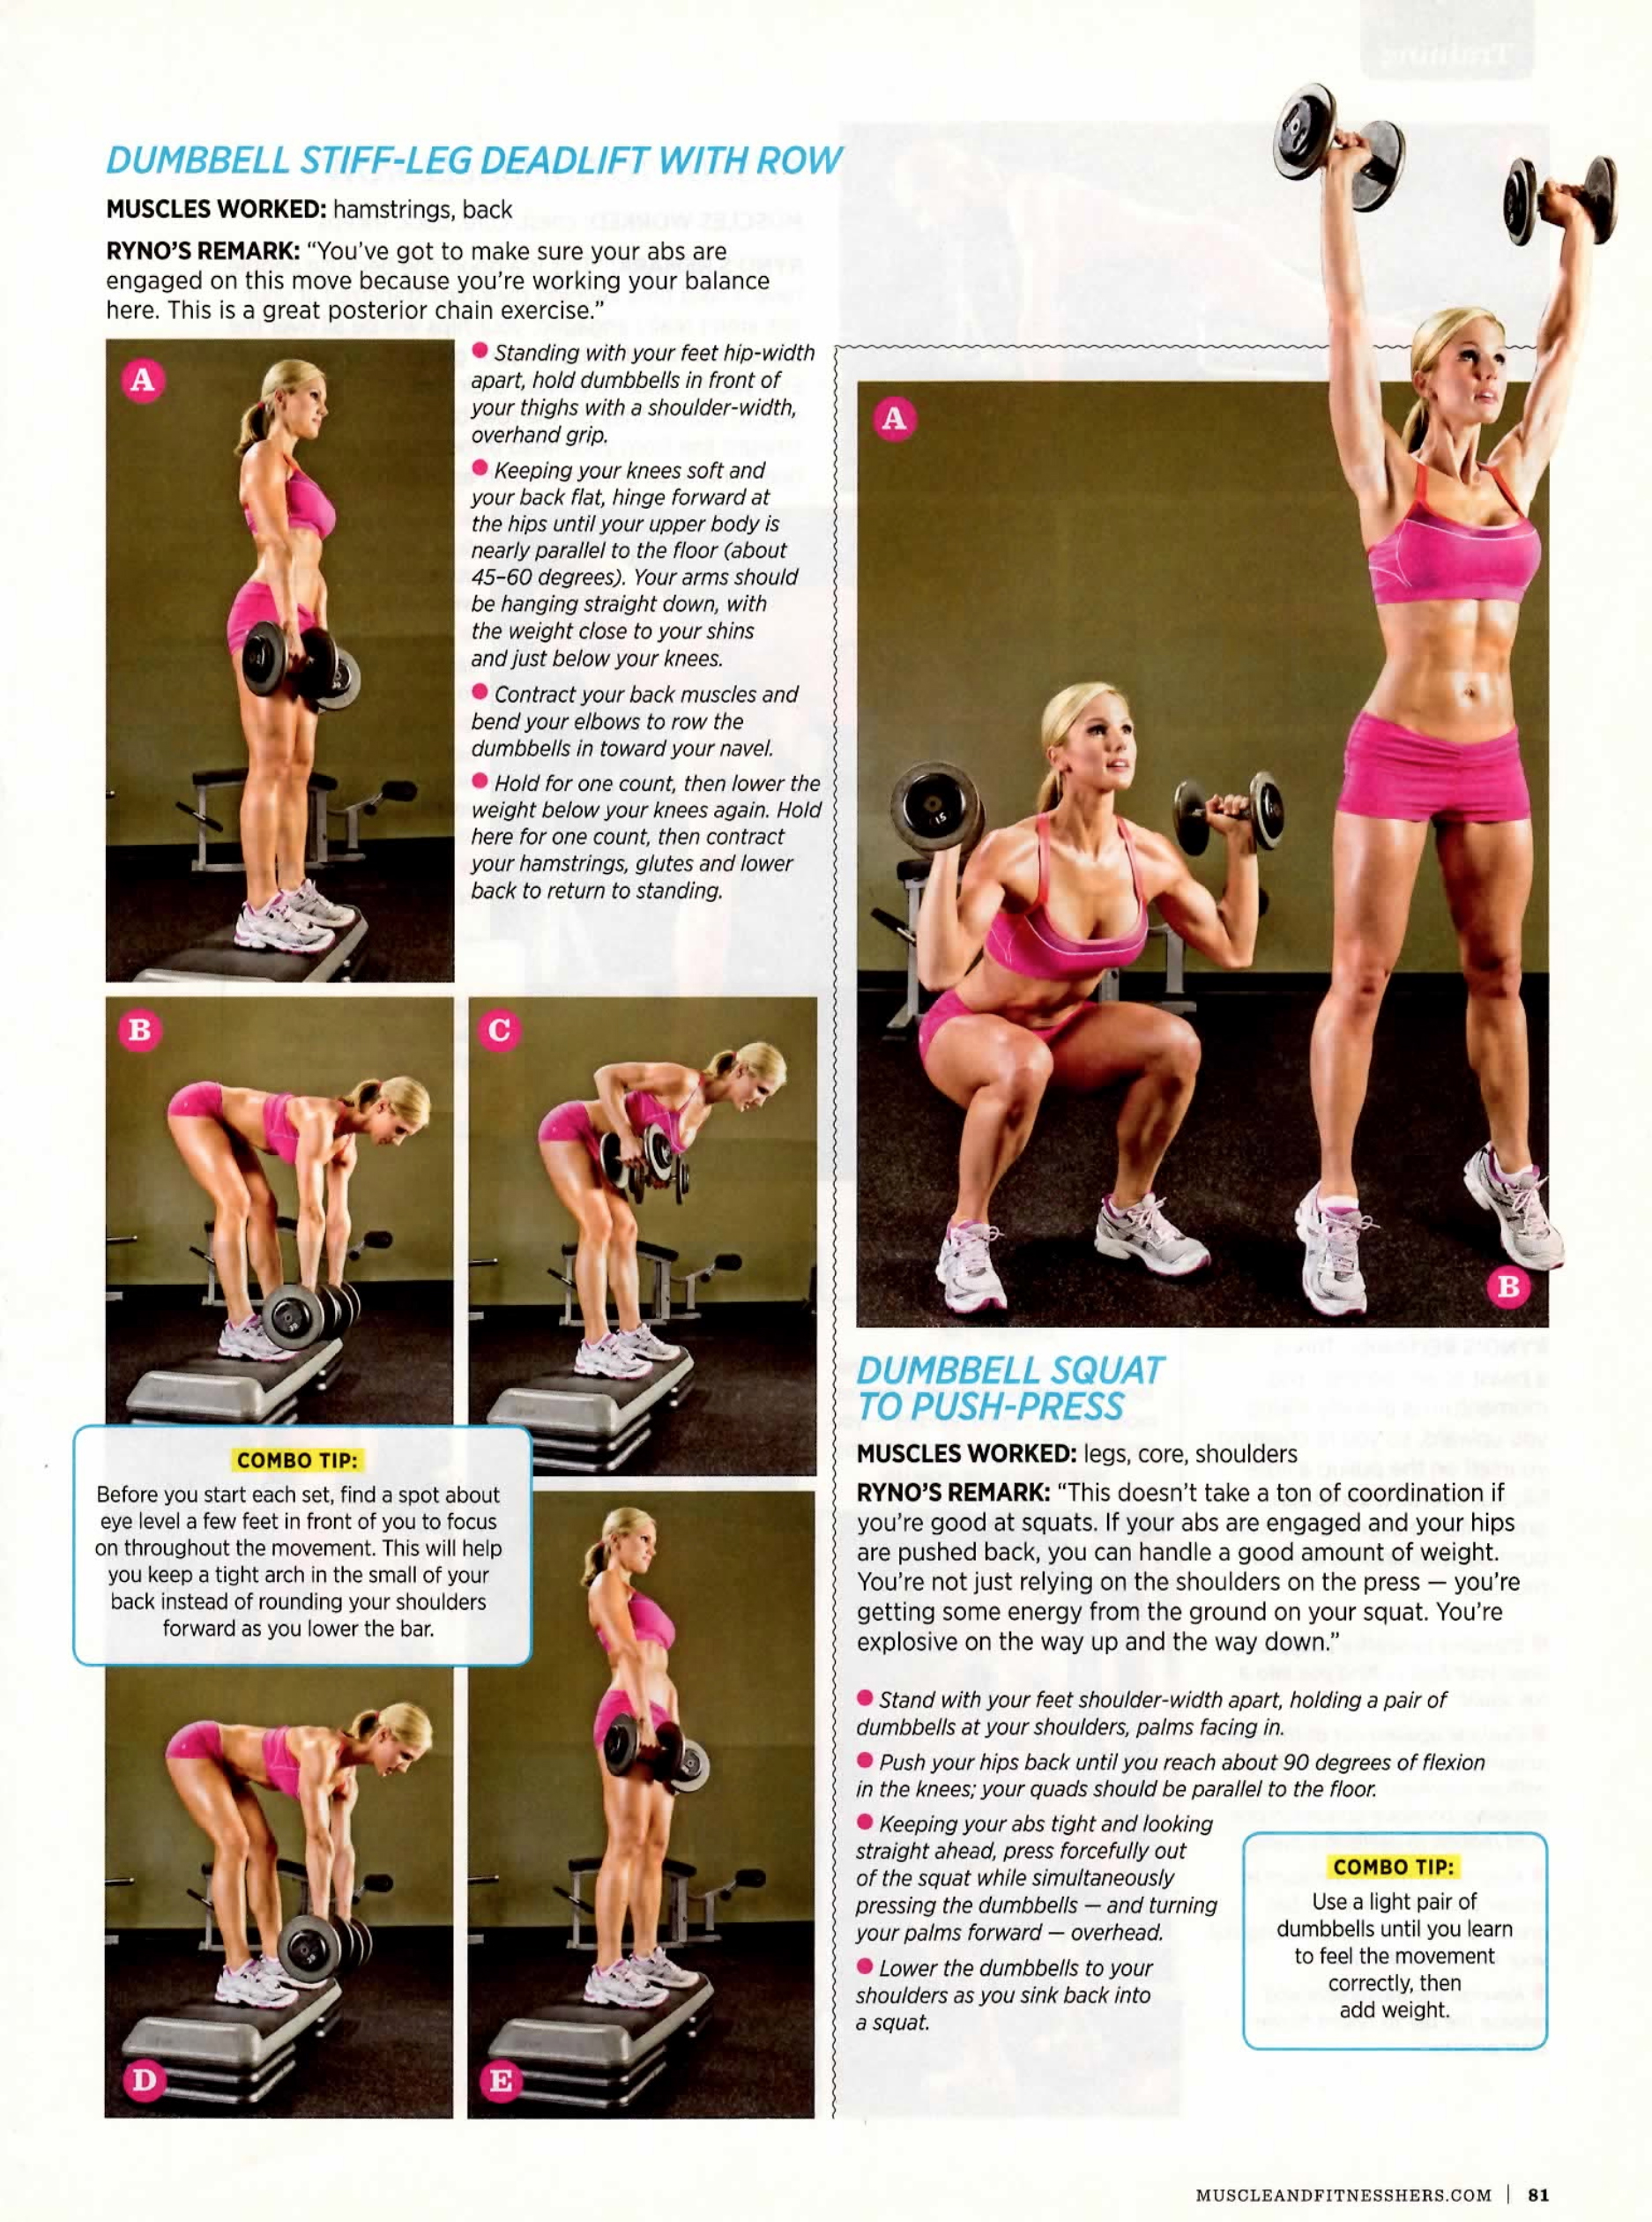 Jim Ryno Muscle and Fitness Hers 3.jpg